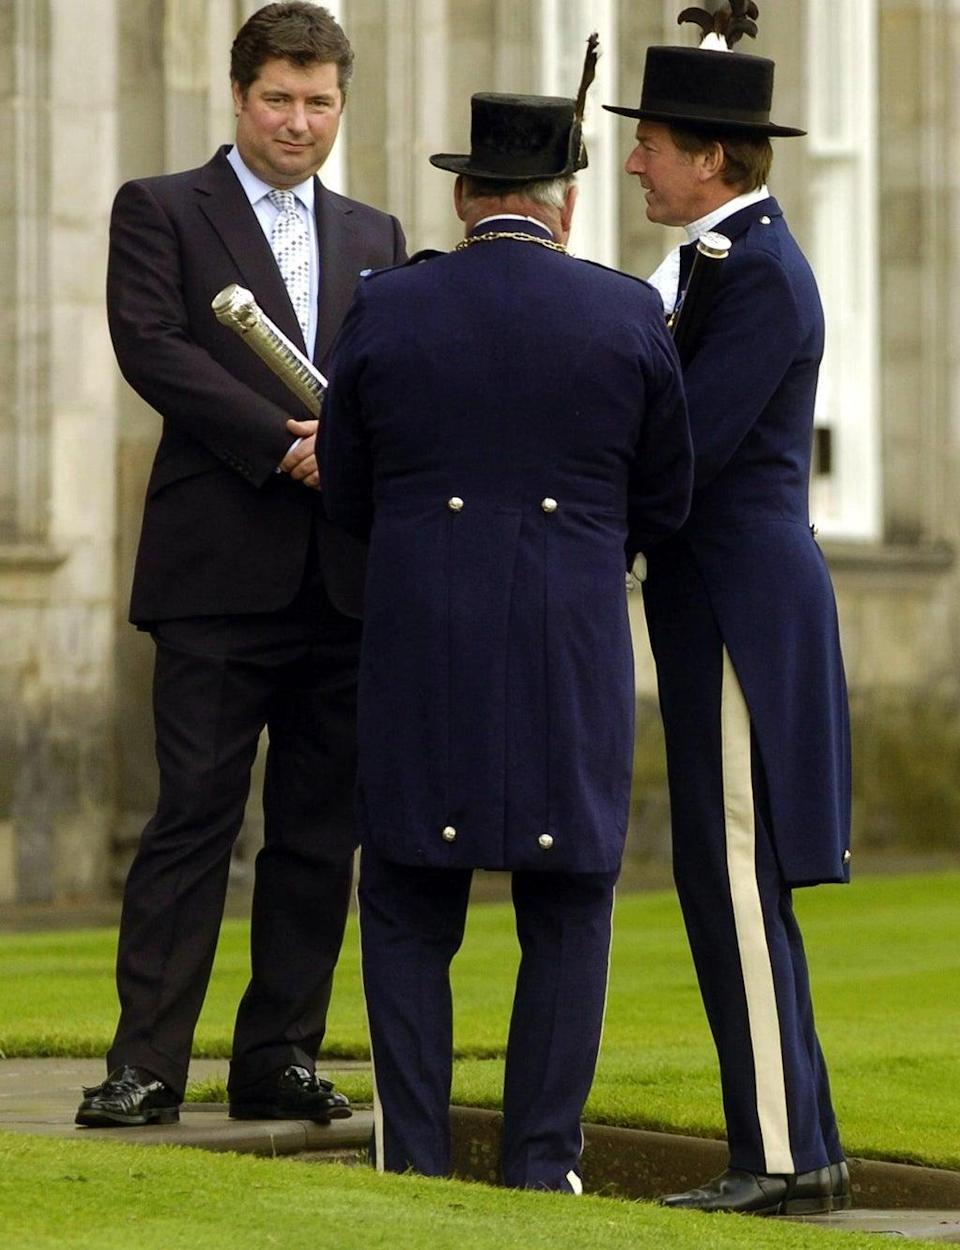 Michael Fawcett during a garden party at the Palace of Holyroodhouse in Edinburgh in 2004 (PA) (PA Archive)